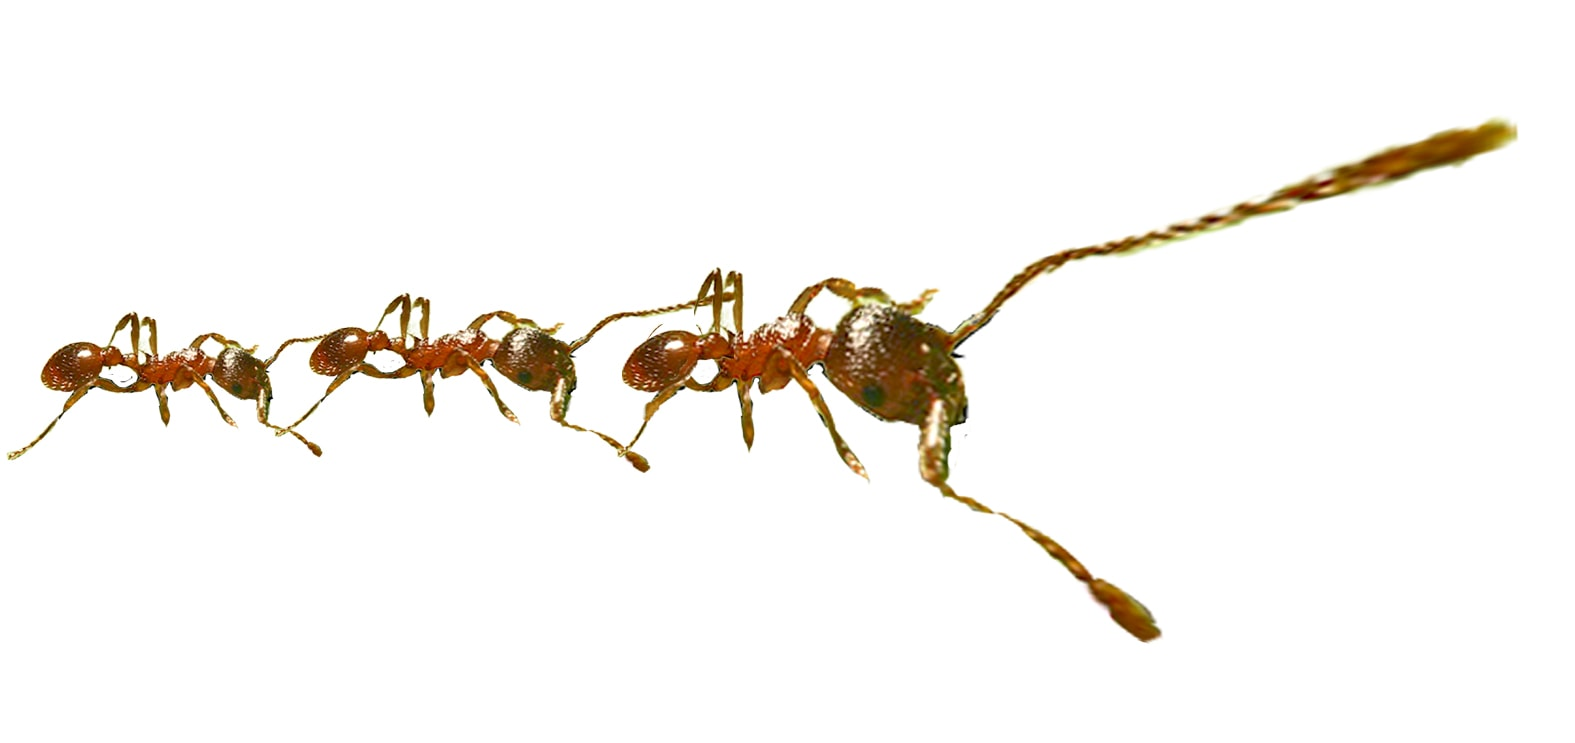 Got ants? We have organic solutions for dealing with ants!